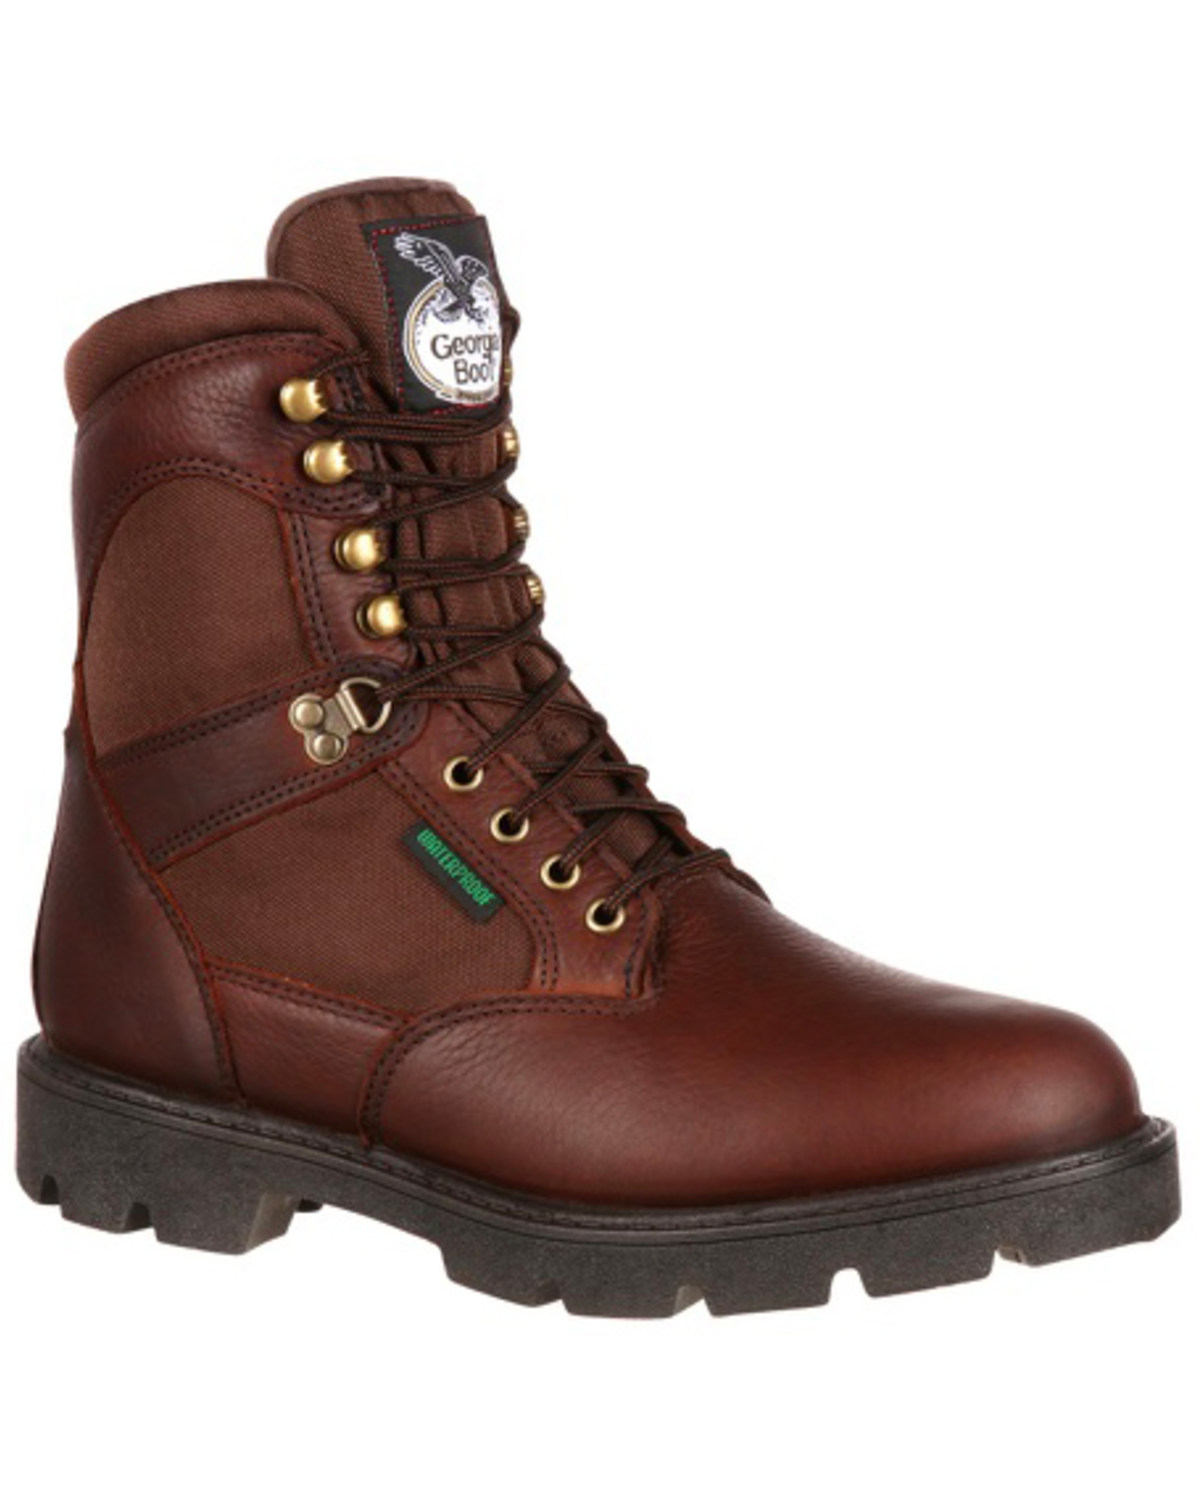 Steel Toe And Waterproof Work Boots